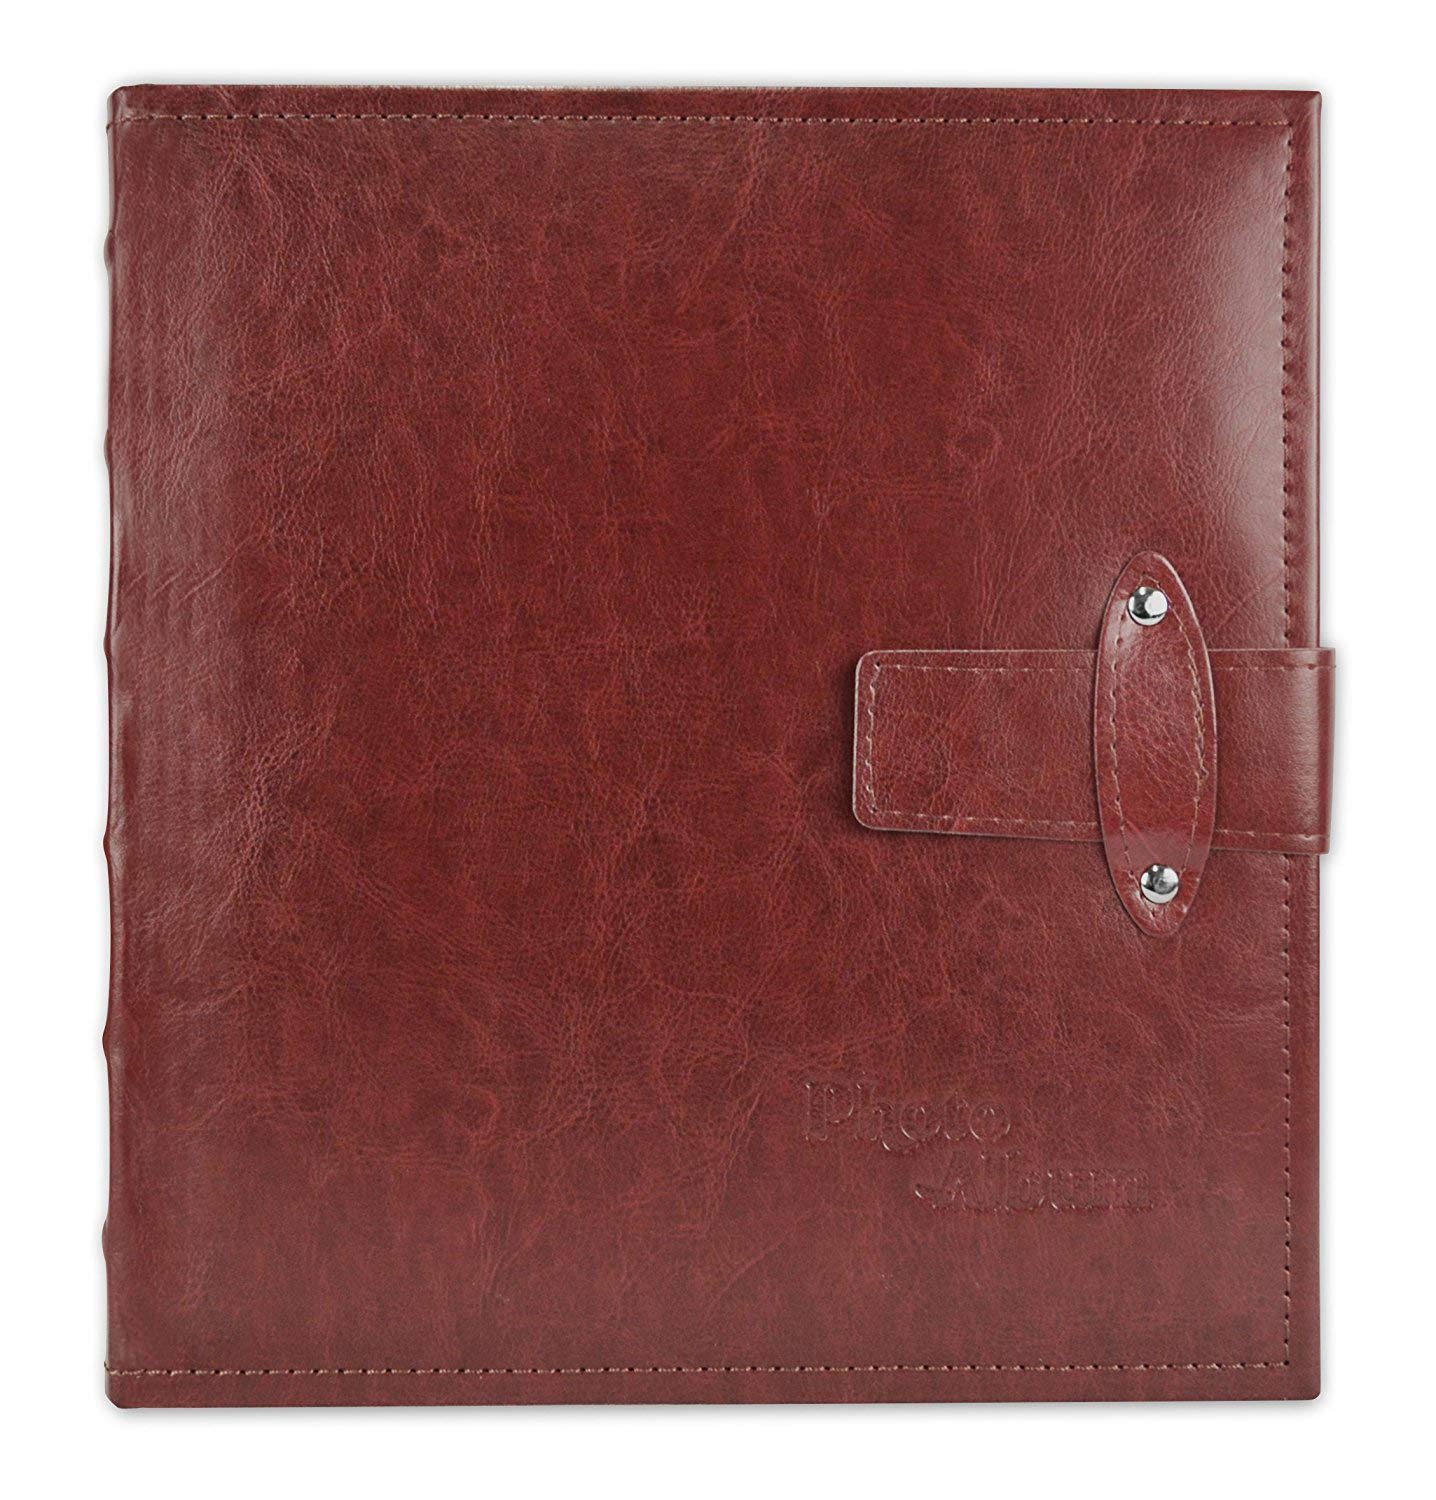 Golden State Art, Maroon Photo Album, Faux Leather Cover, with Strap Closure, 200 Pocket for 5x7 Pictures, 2 Per Page (6223)